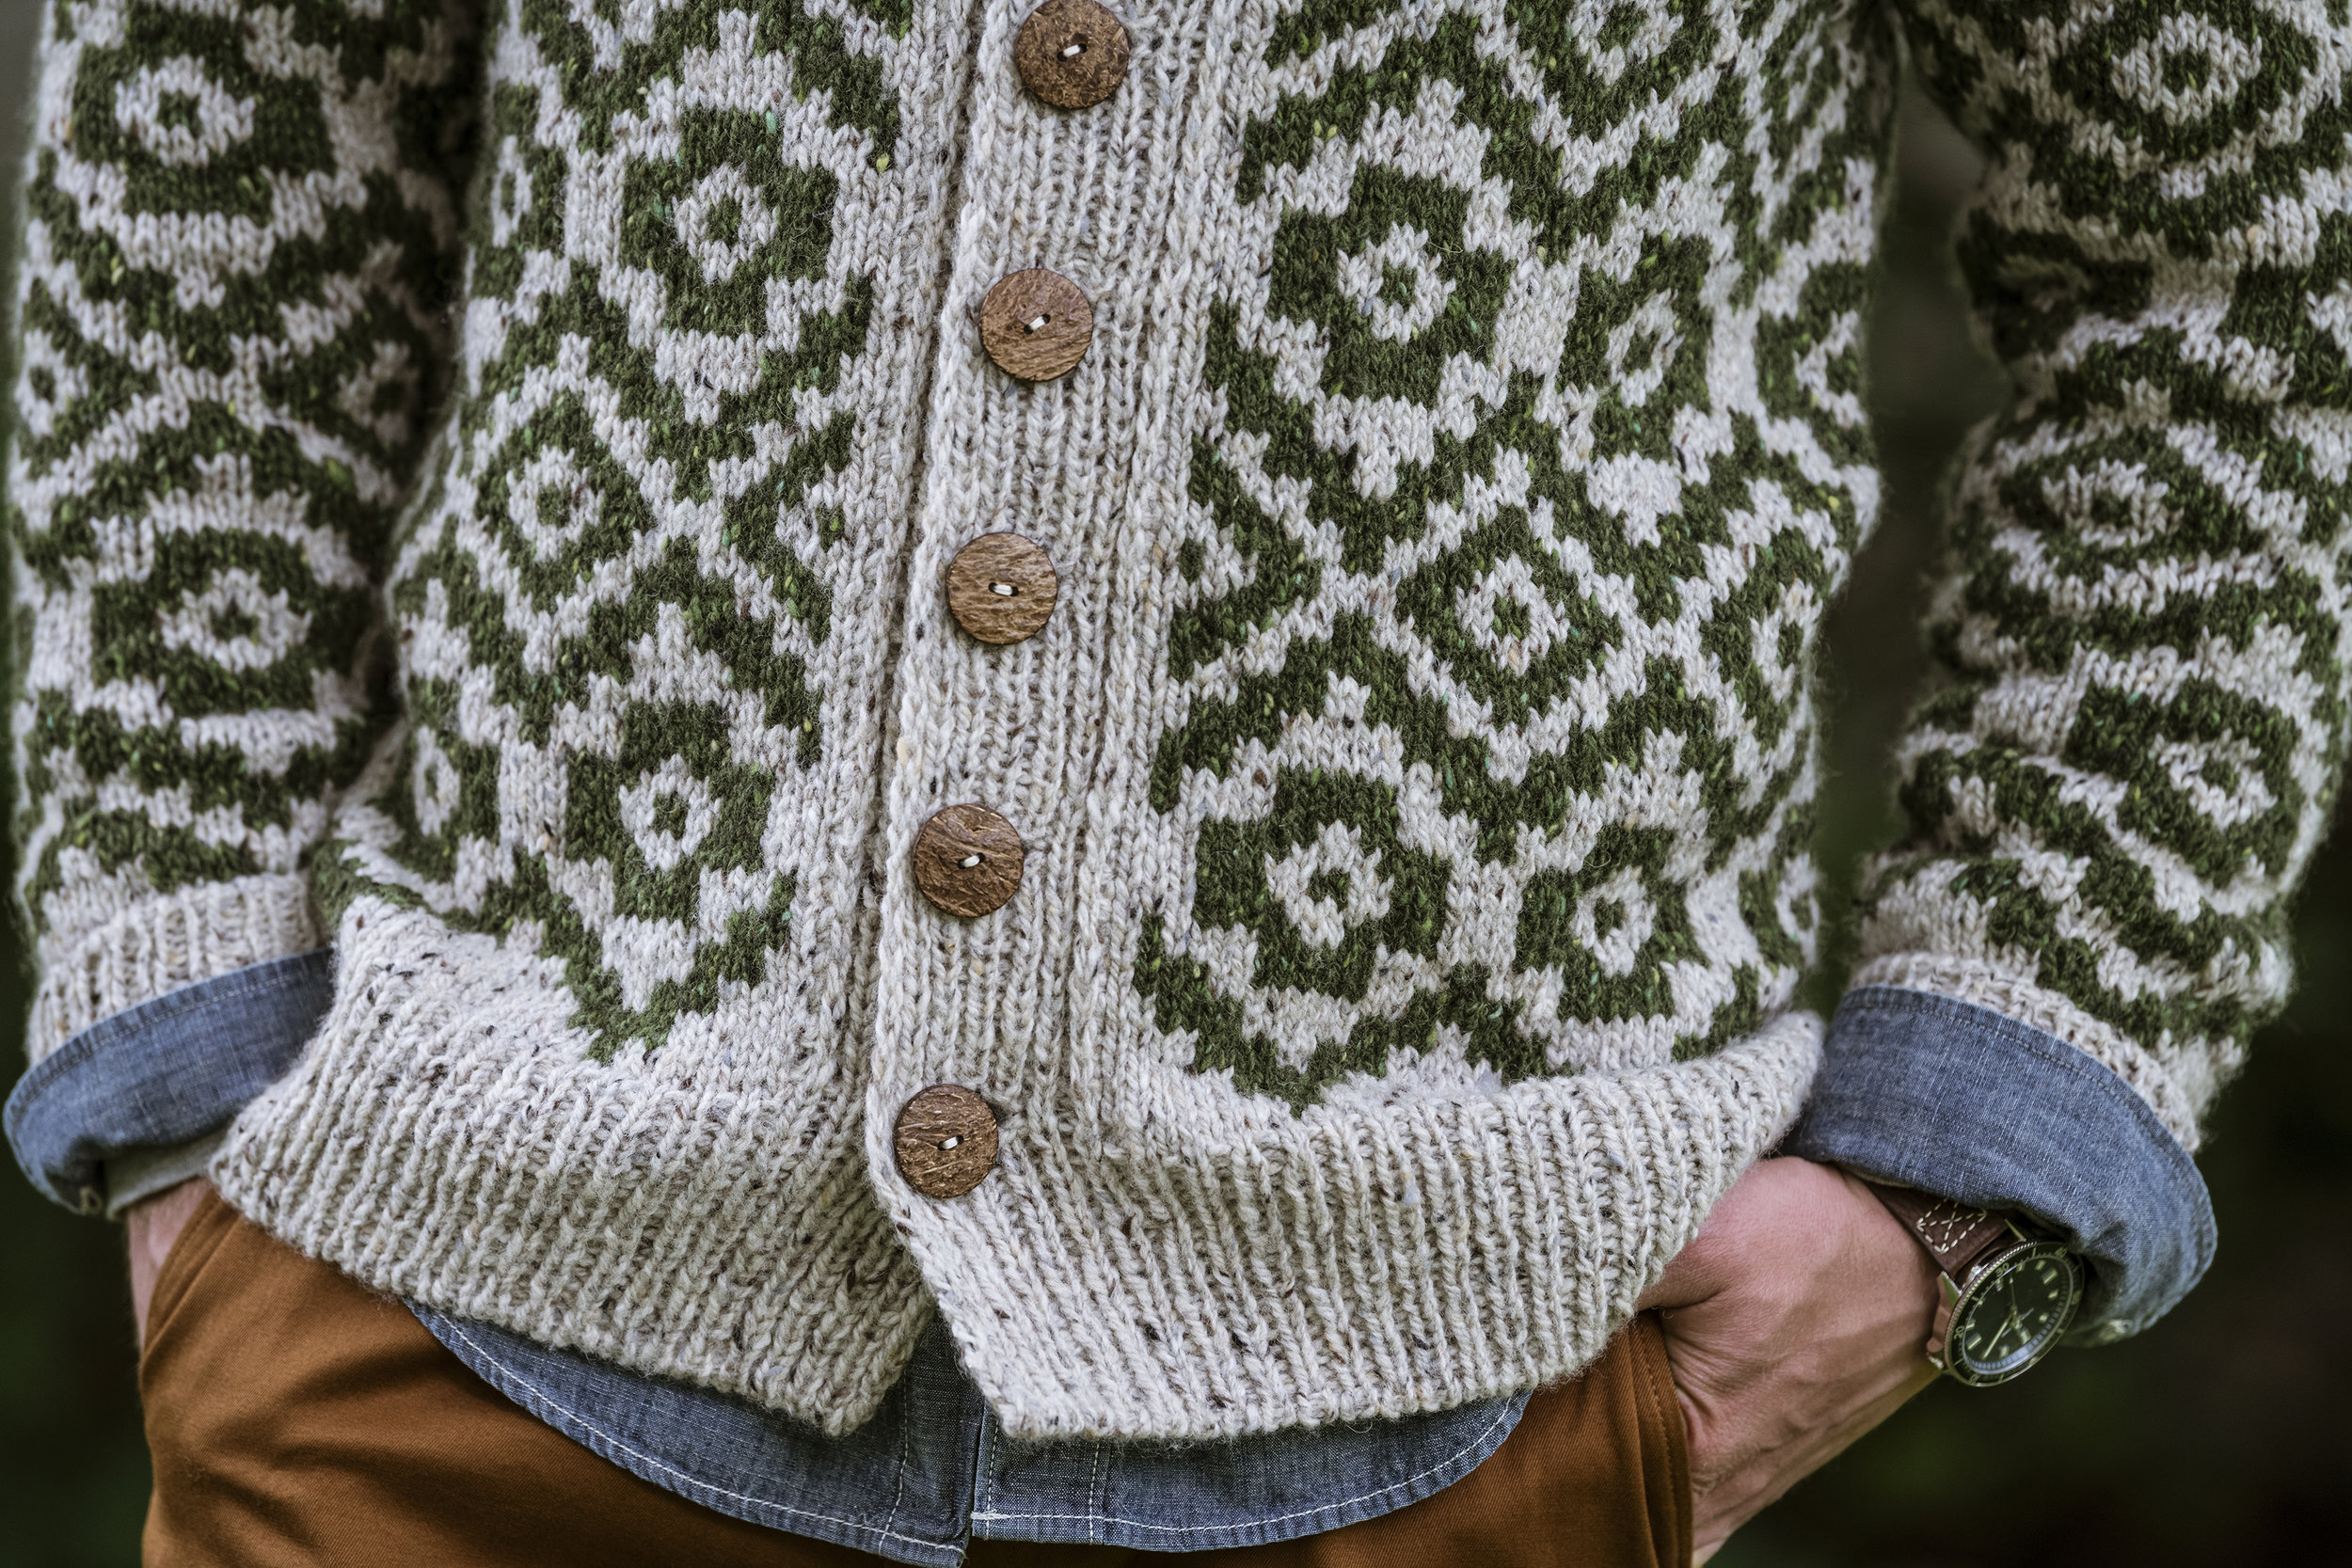 Powelton Cardigan by Meghan Babin